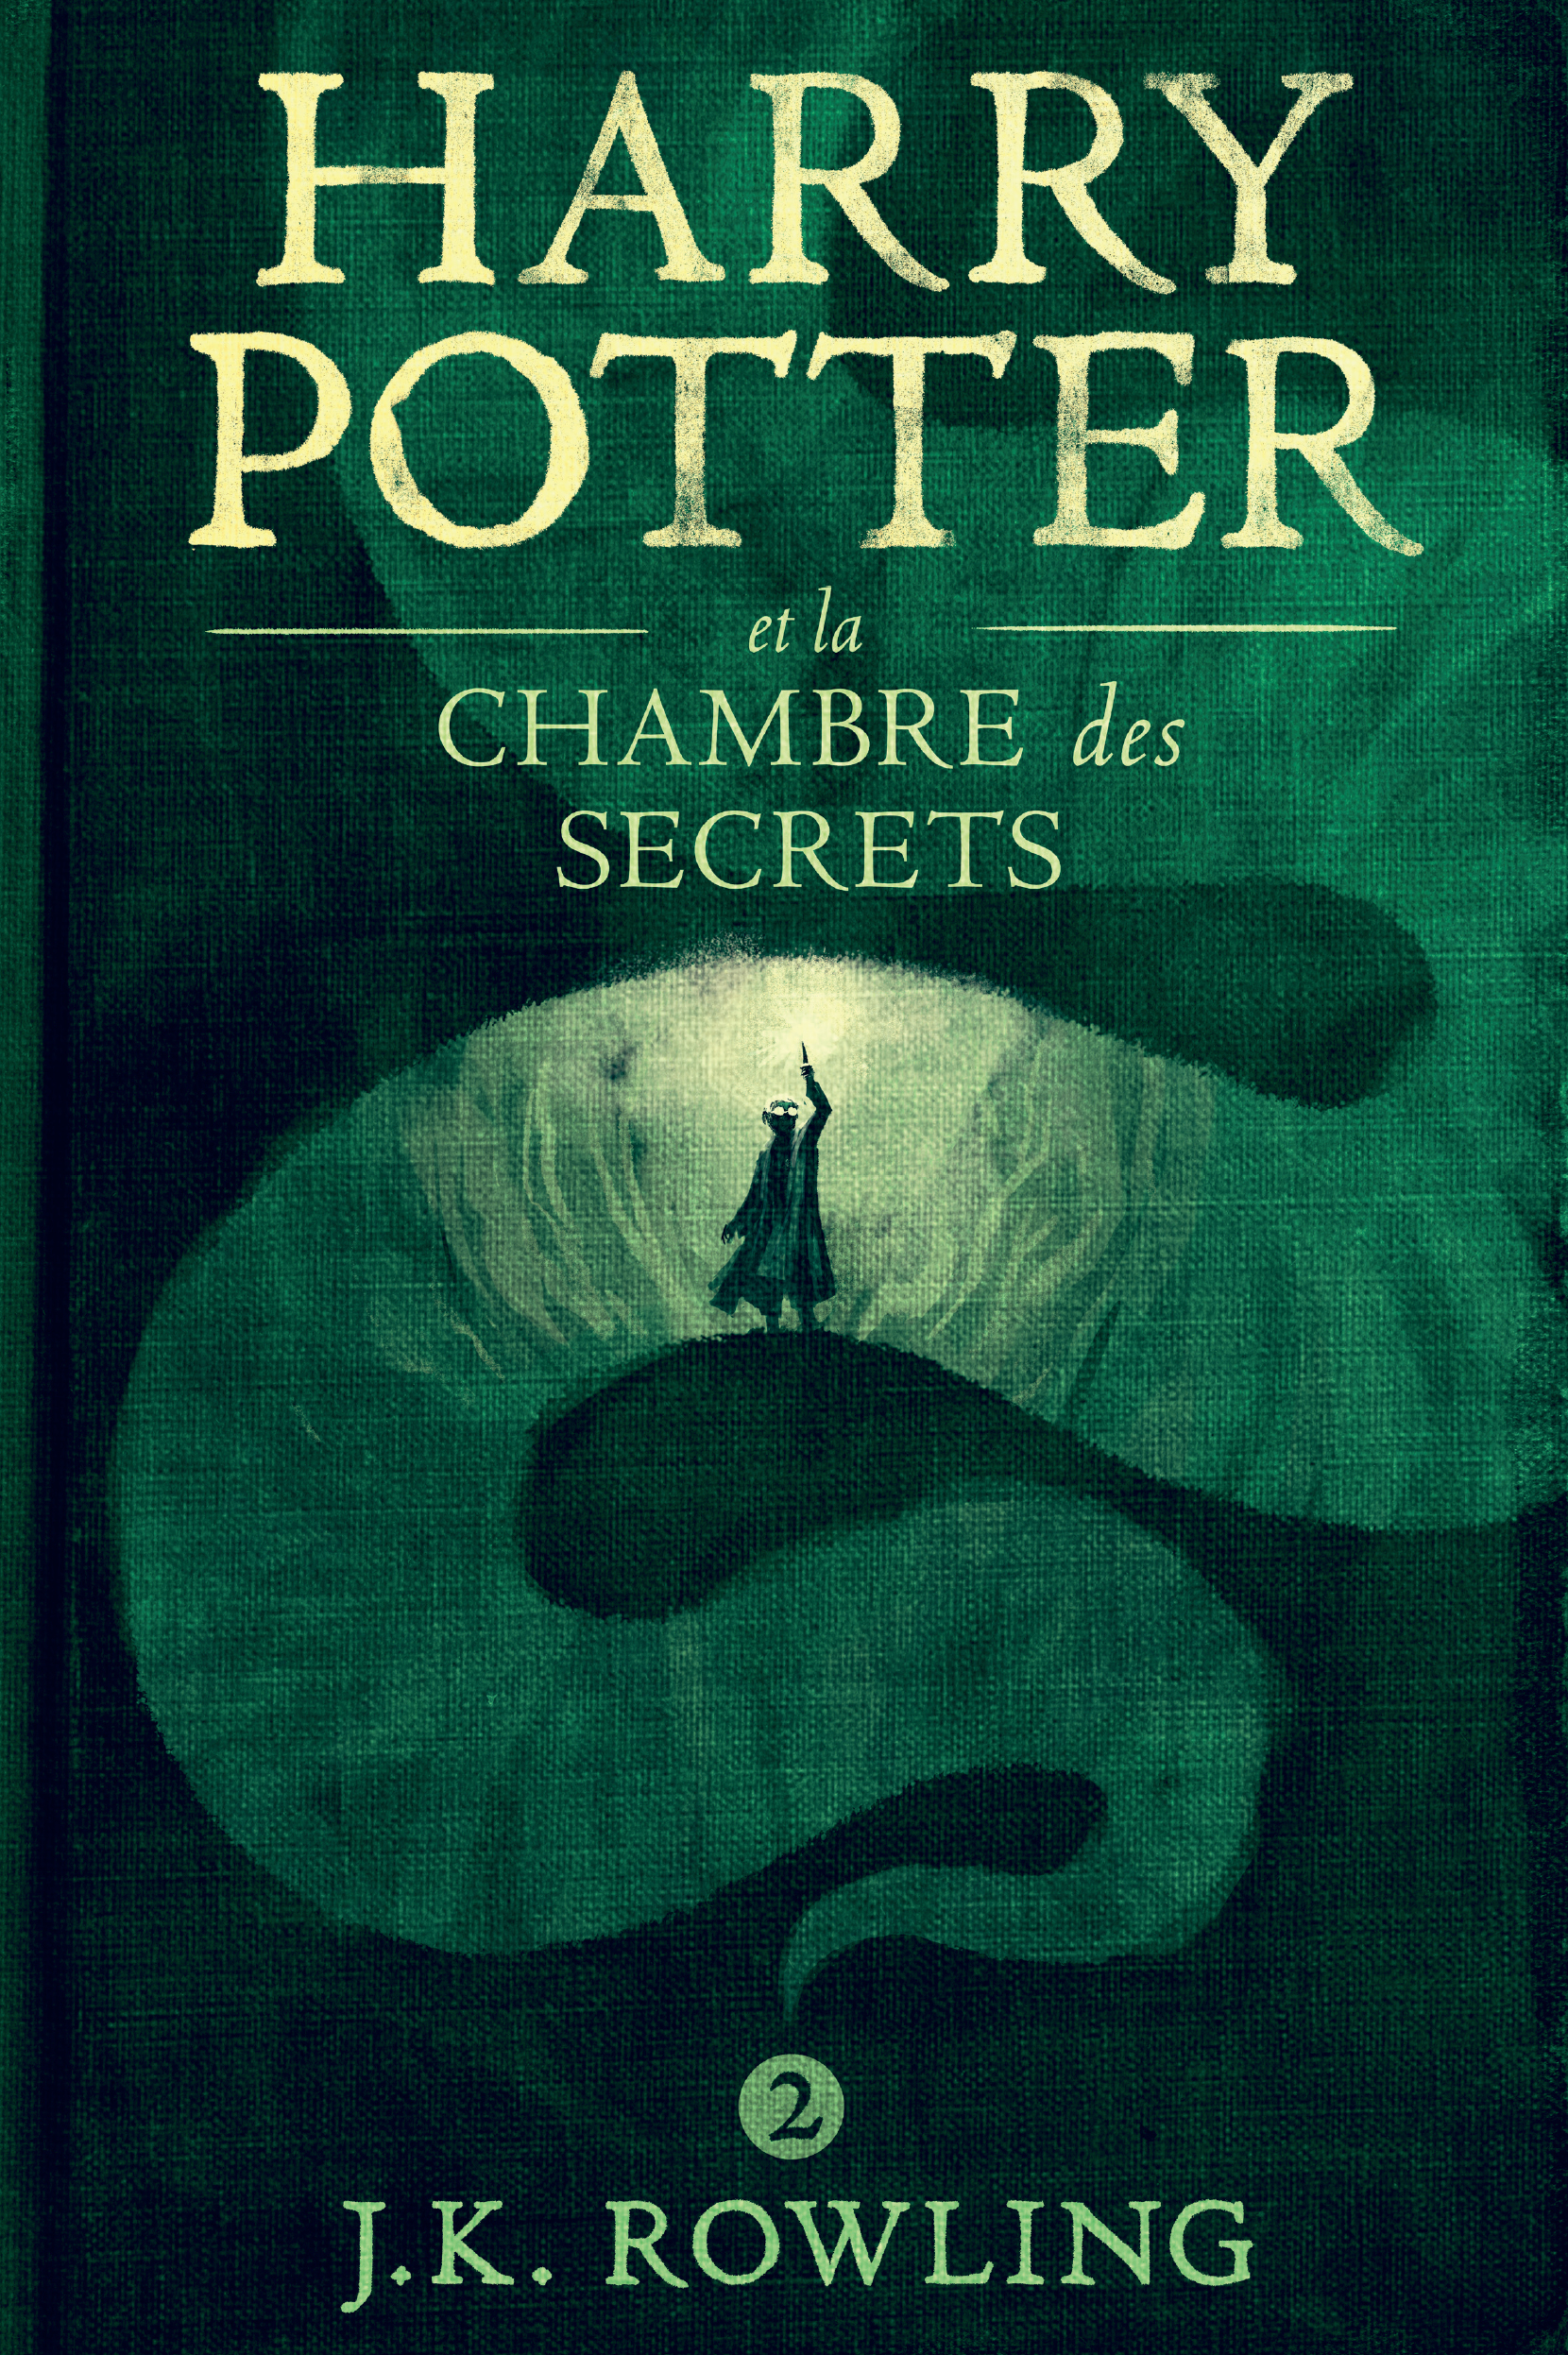 Harry potter et la chambre des secrets by j k rowling and - Regarder harry potter chambre secrets streaming ...